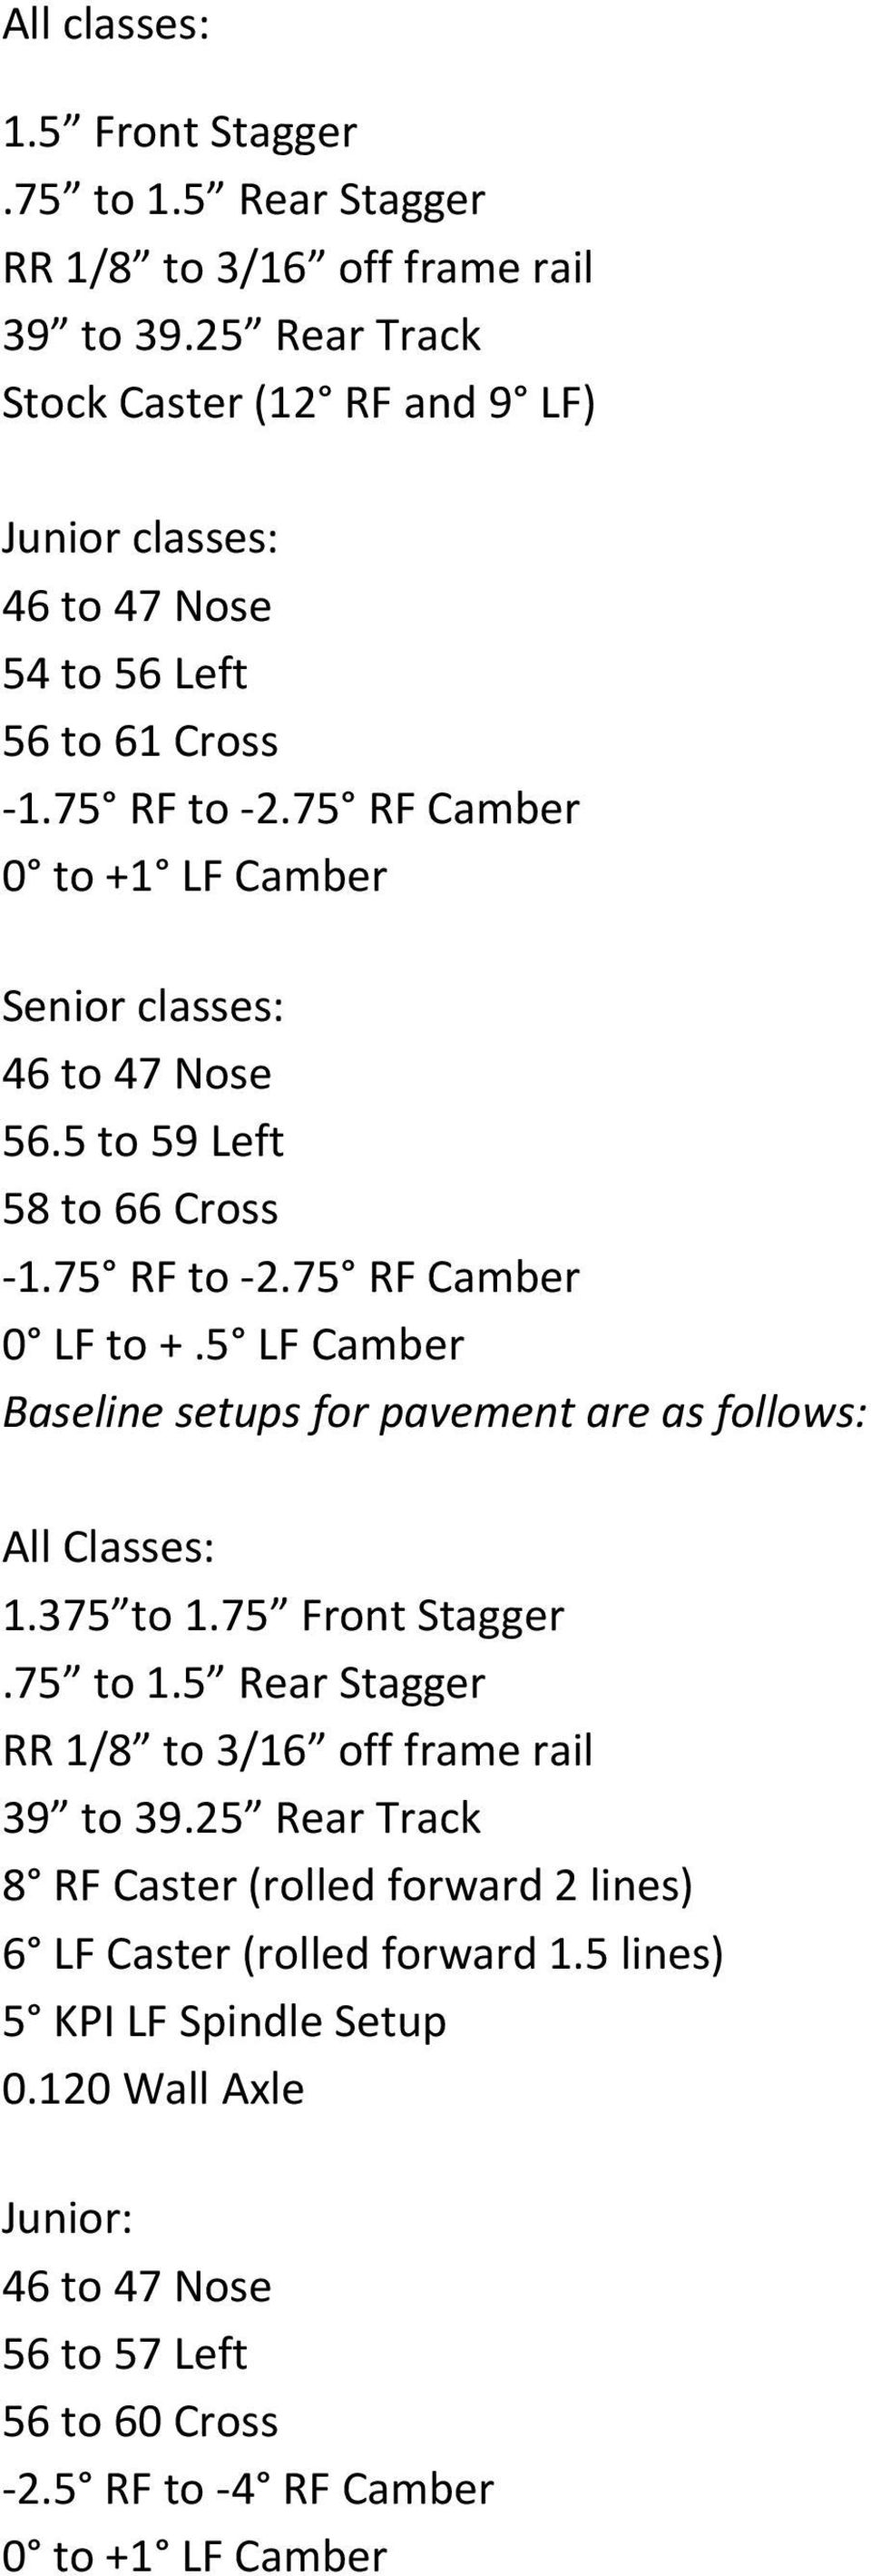 75 RF Camber 0 to +1 LF Camber Senior classes: 46 to 47 Nose 56.5 to 59 Left 58 to 66 Cross 1.75 RF to 2.75 RF Camber 0 LF to +.